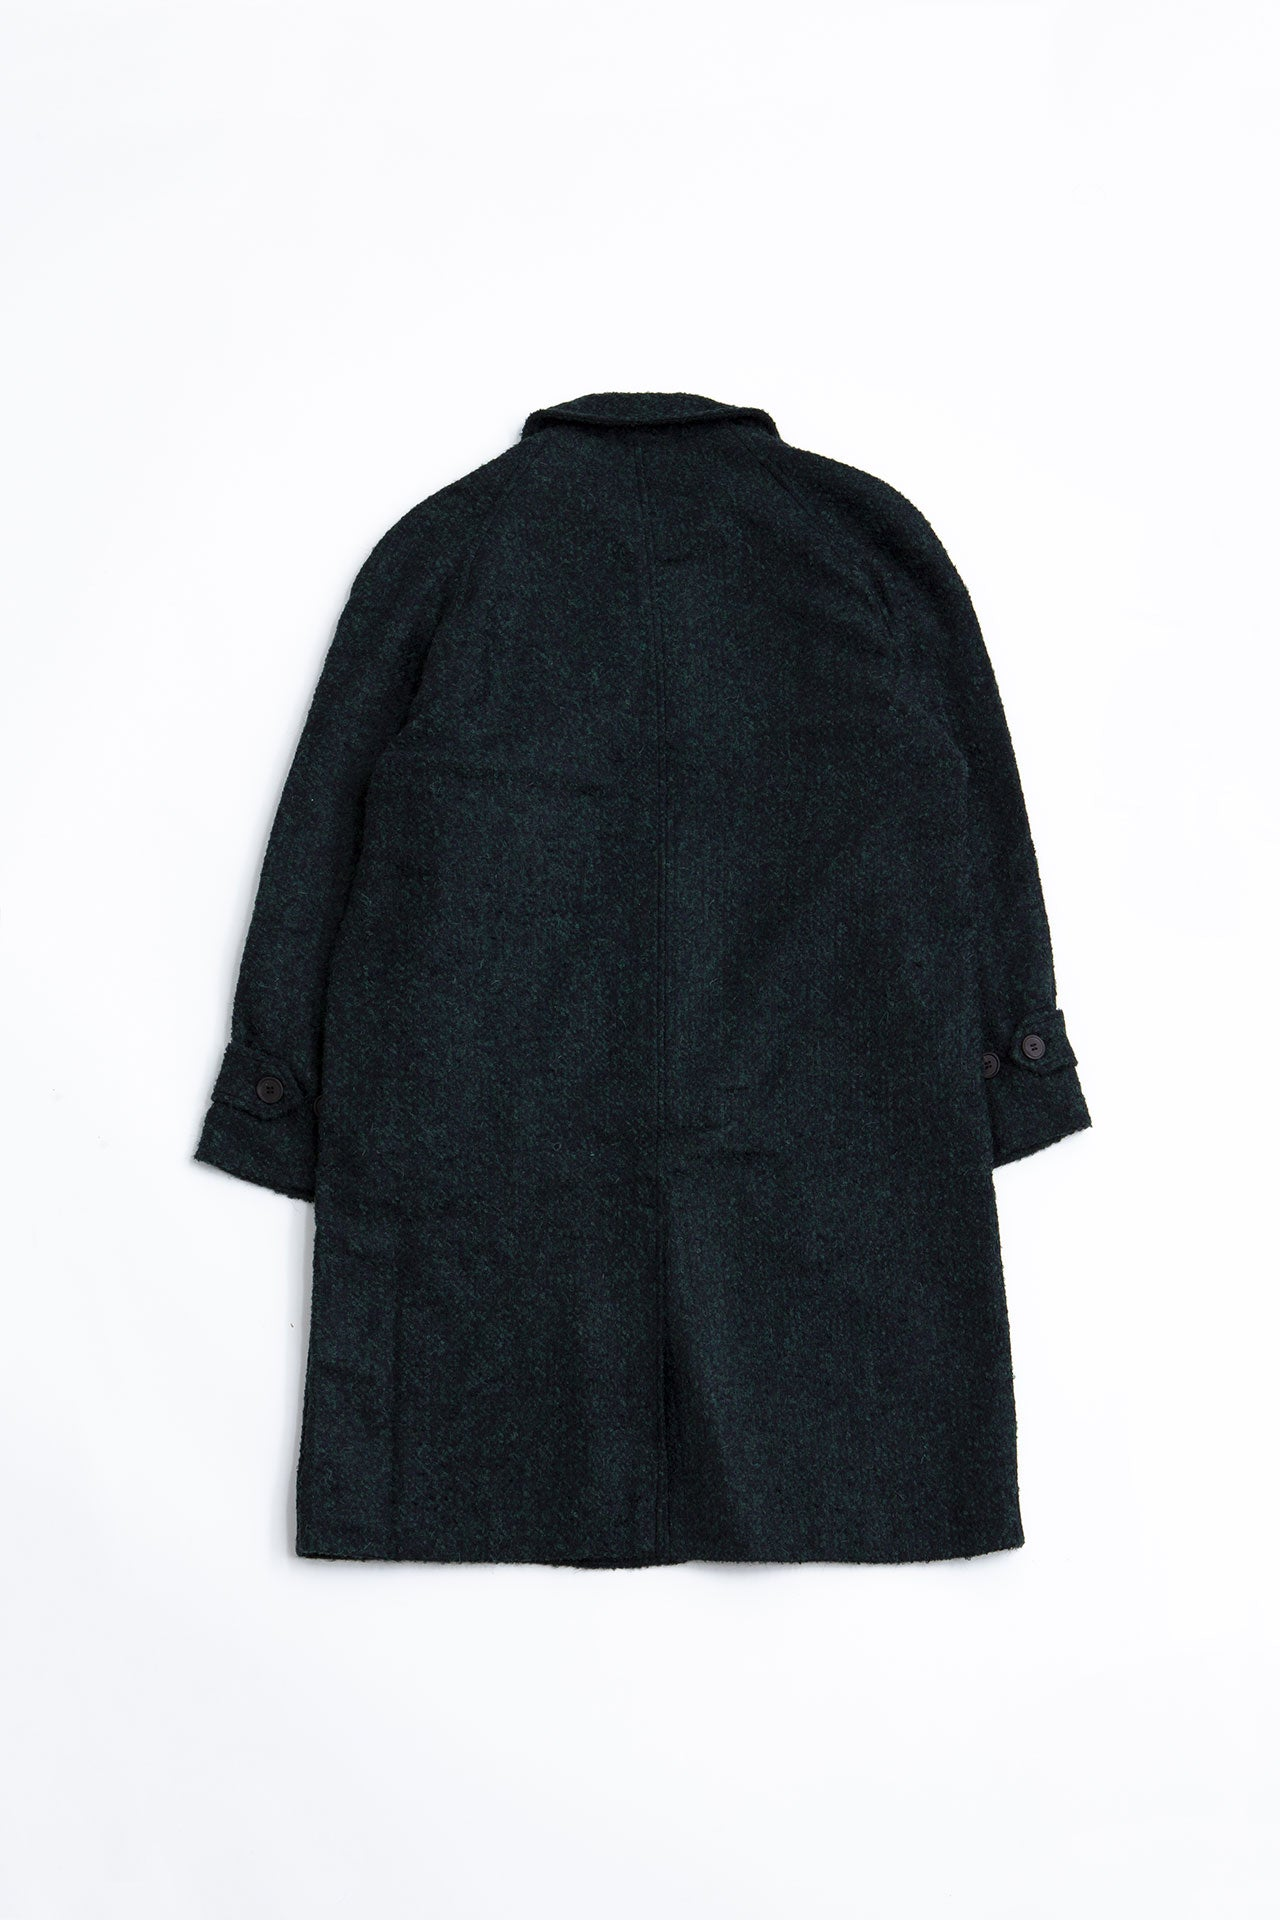 Coat Oversized Boucle melange black/green